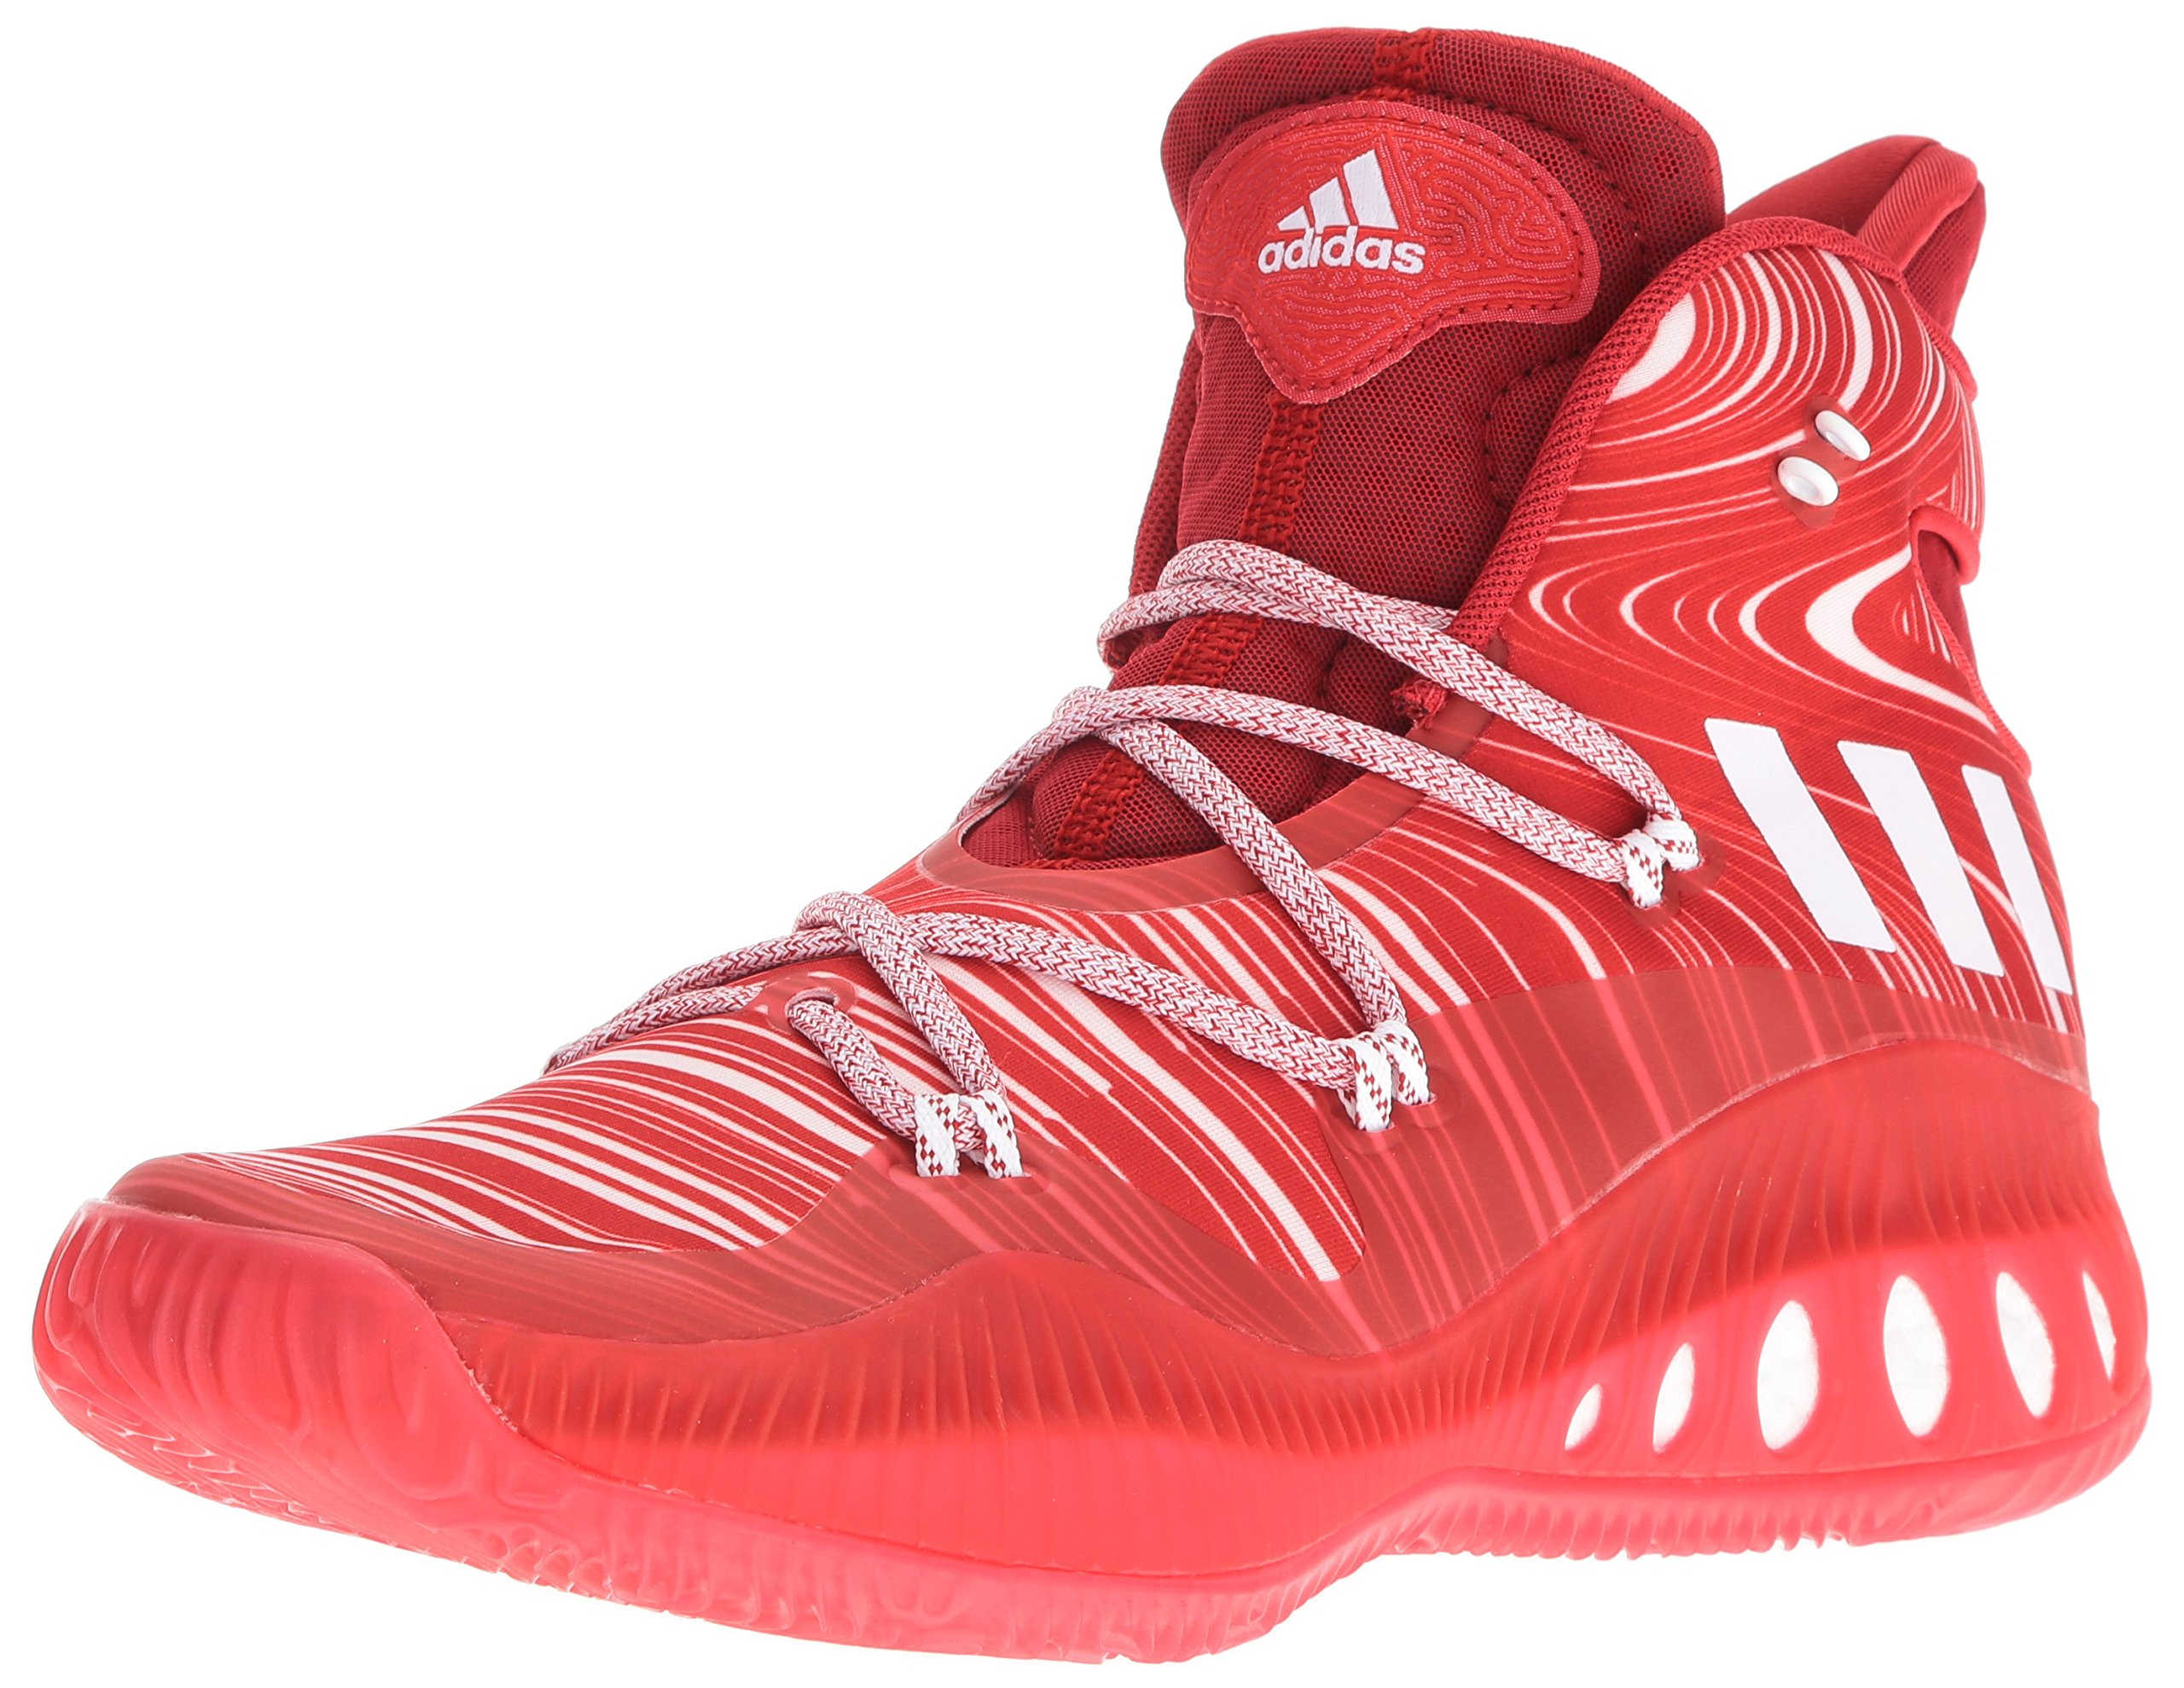 adidas Men's Crazy Explosive Basketball Shoes, ScarletWhiteUniversity Red, (6.5 M US)